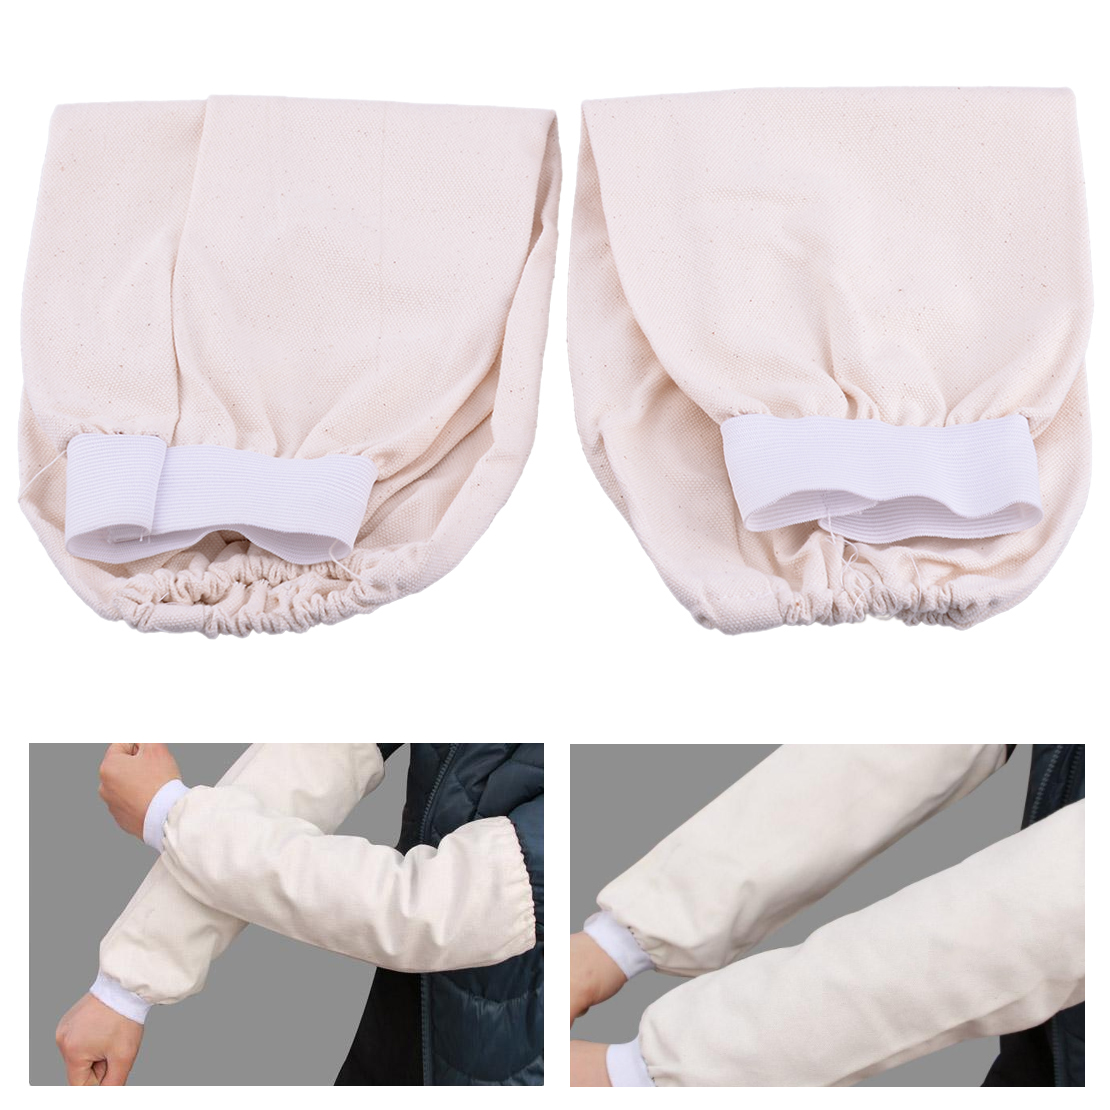 CHCP01 2PCS FR SLEEVES COTTON FABRIC STANDARD FLAME RESISTANT SLEEVE Sleeves NEW